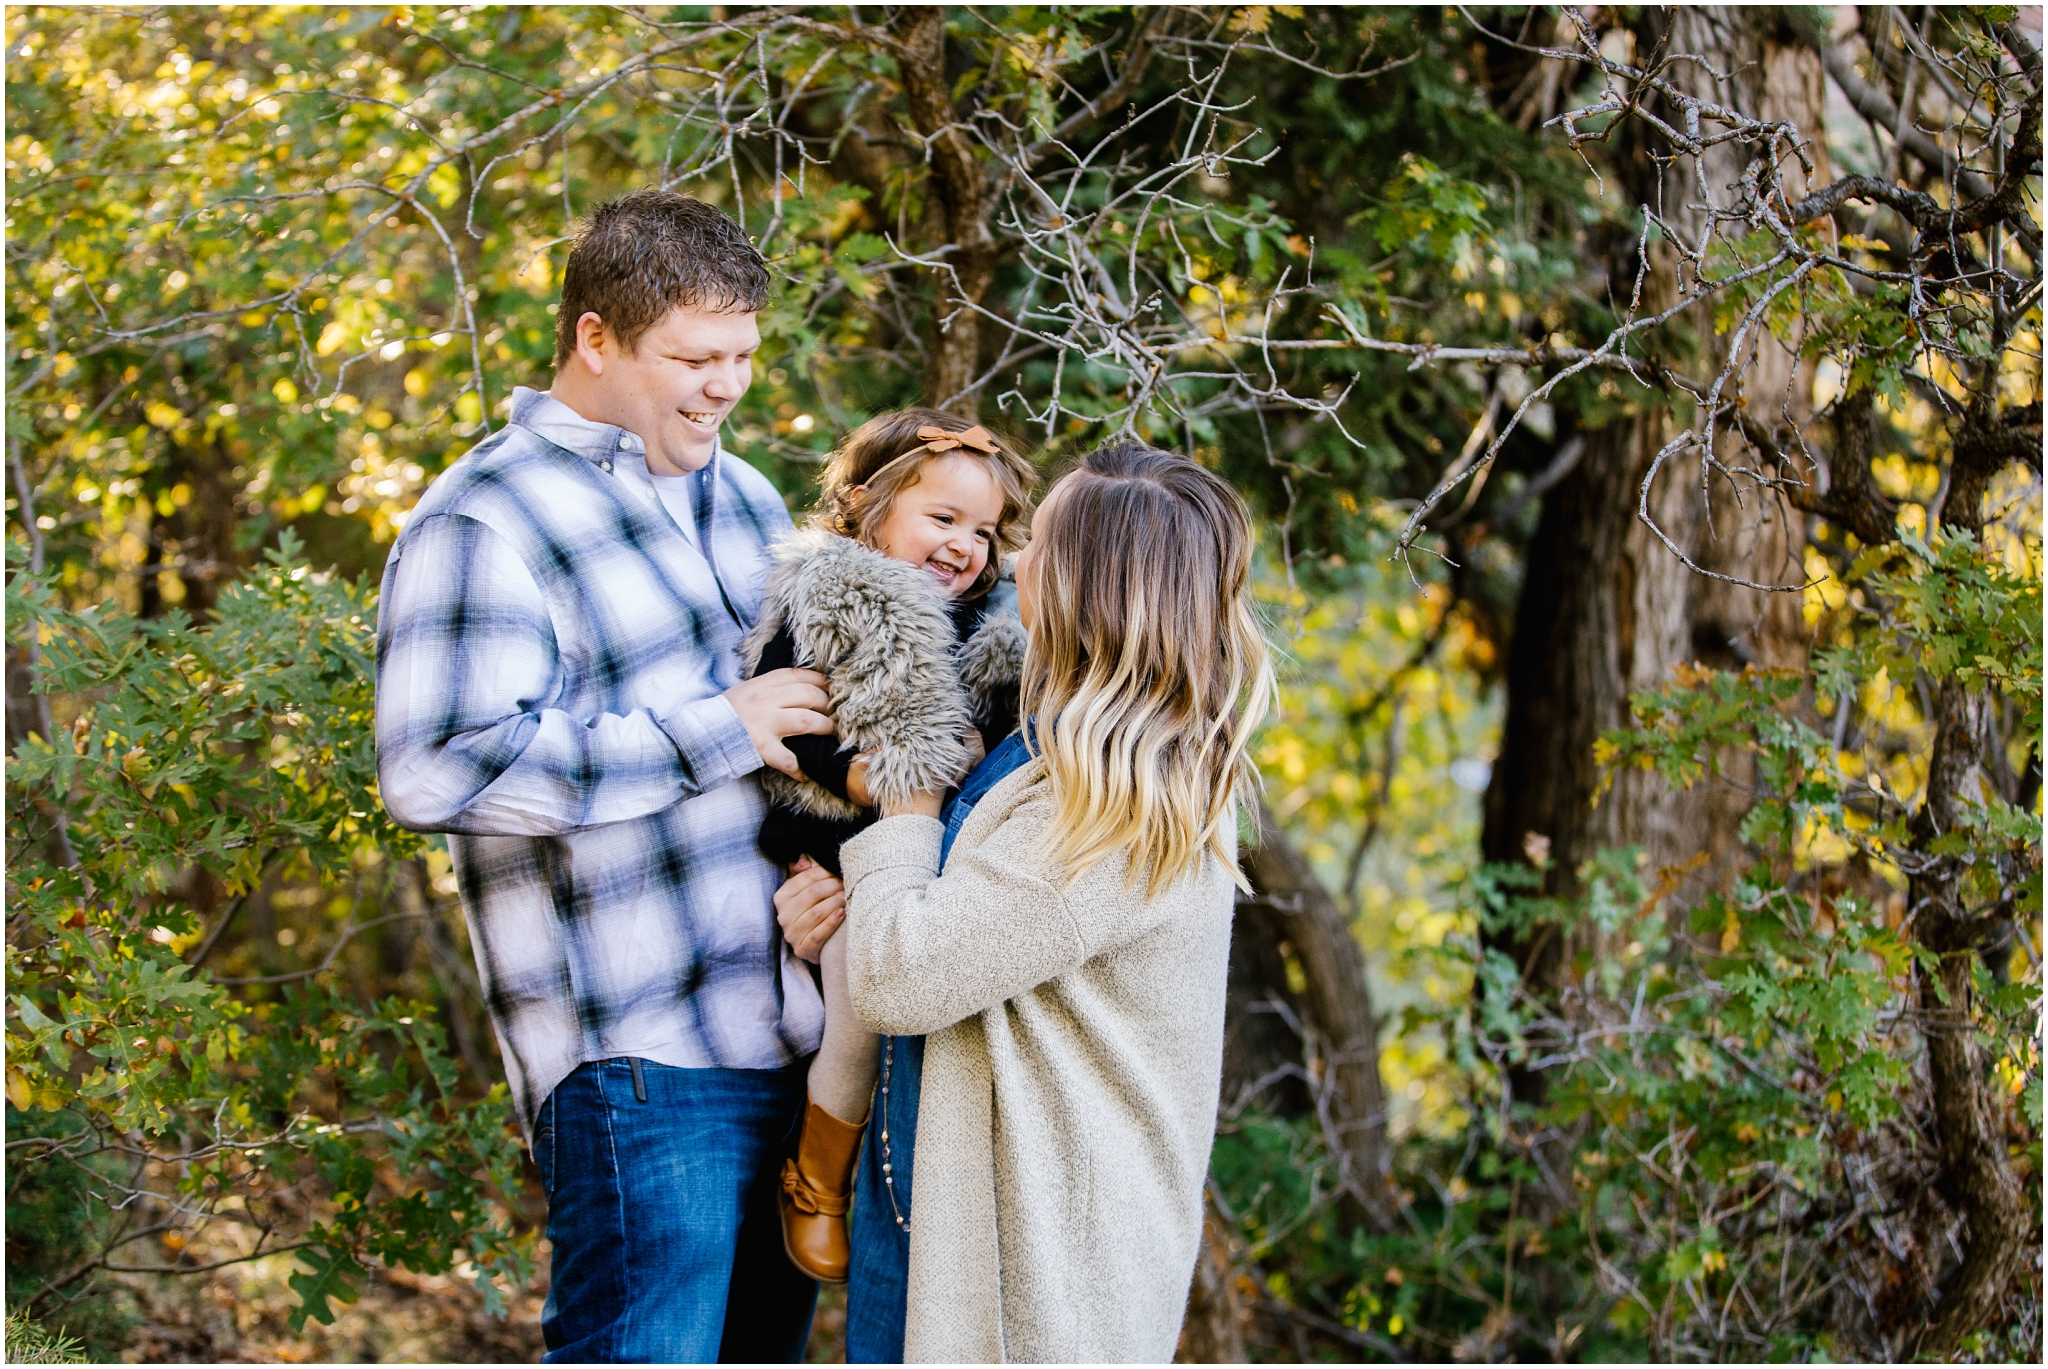 Frandsen-5_Lizzie-B-Imagery-Utah-Family-Photographer-Utah-County-Central-Utah-Park-City-Salt-Lake-City.jpg